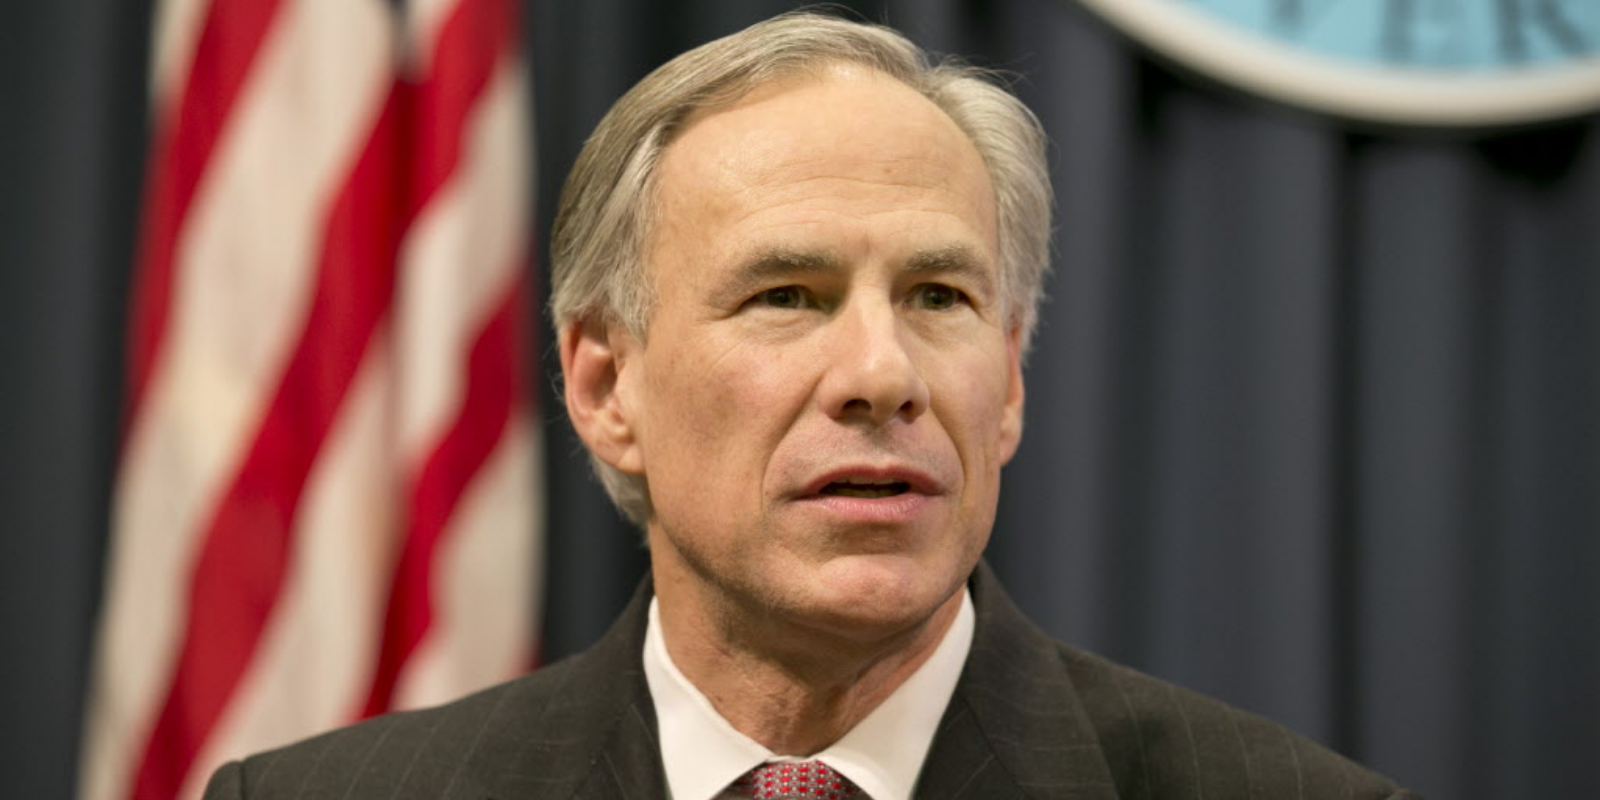 Texas Governor Greg Abbott says vetting National Guard for political beliefs is 'the most offensive thing' he's ever heard